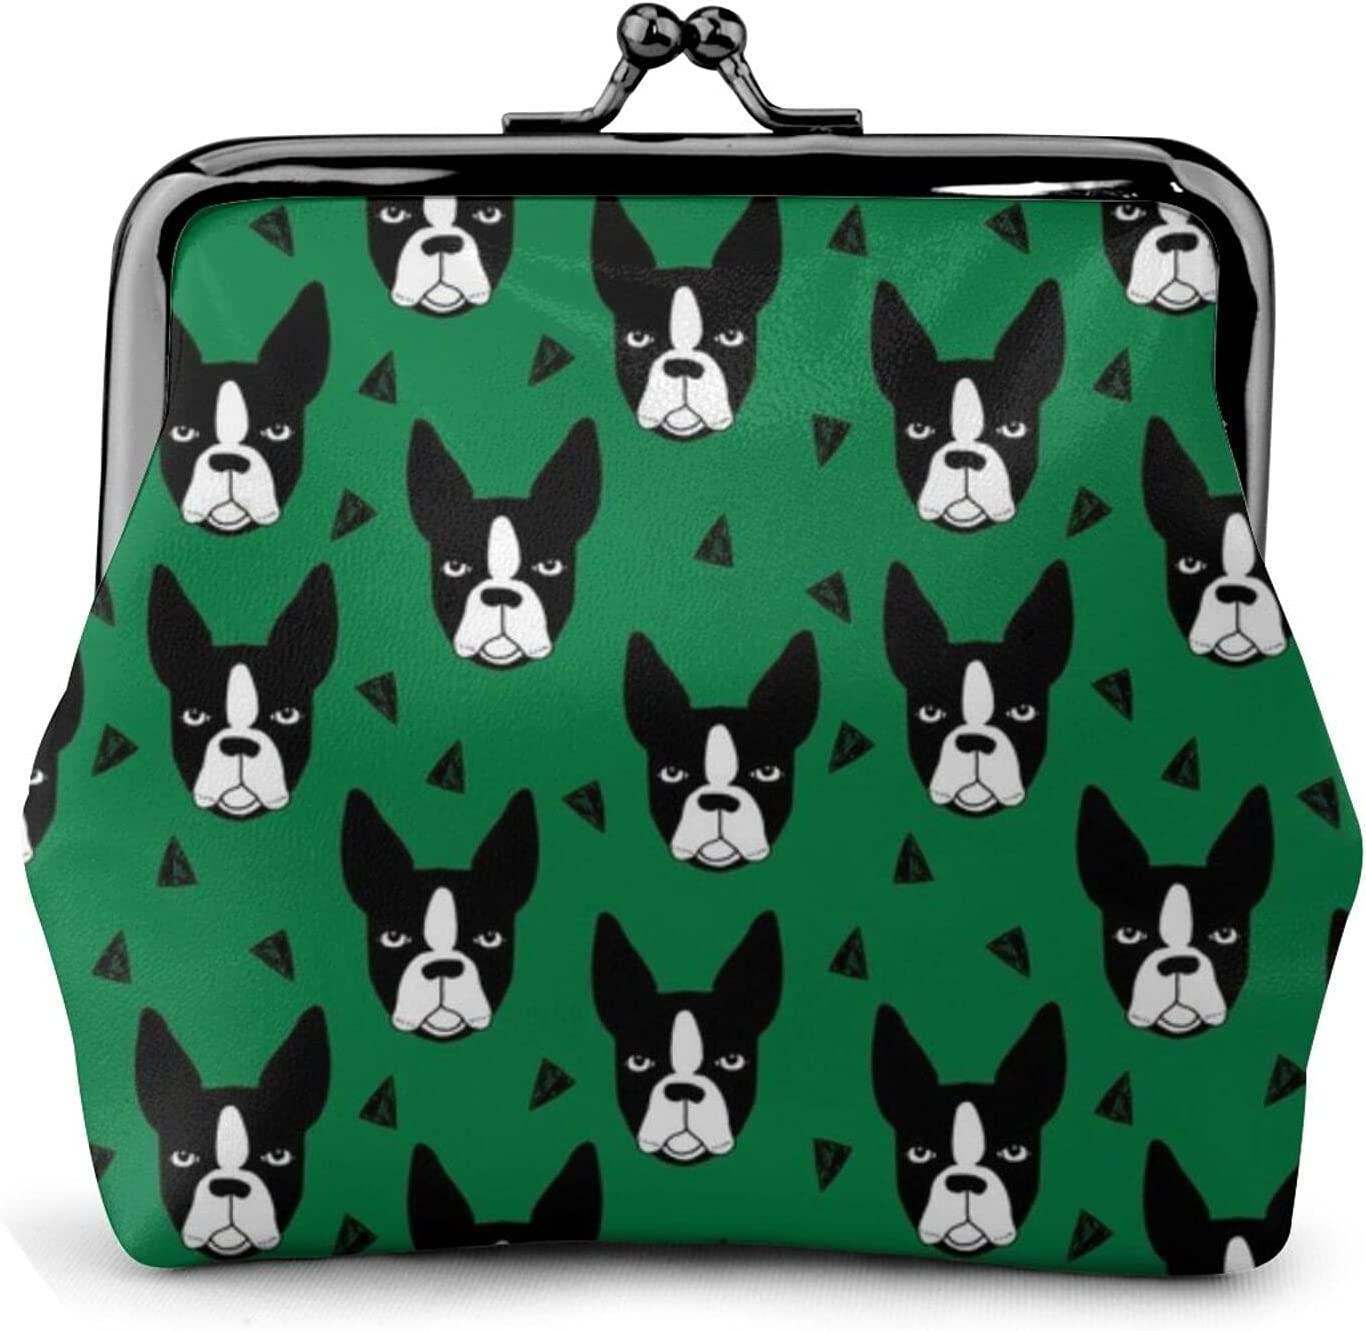 Boston Terrier Kelly 1015 Coin Purse Retro Money Pouch with Kiss-lock Buckle Small Wallet for Women and Girls